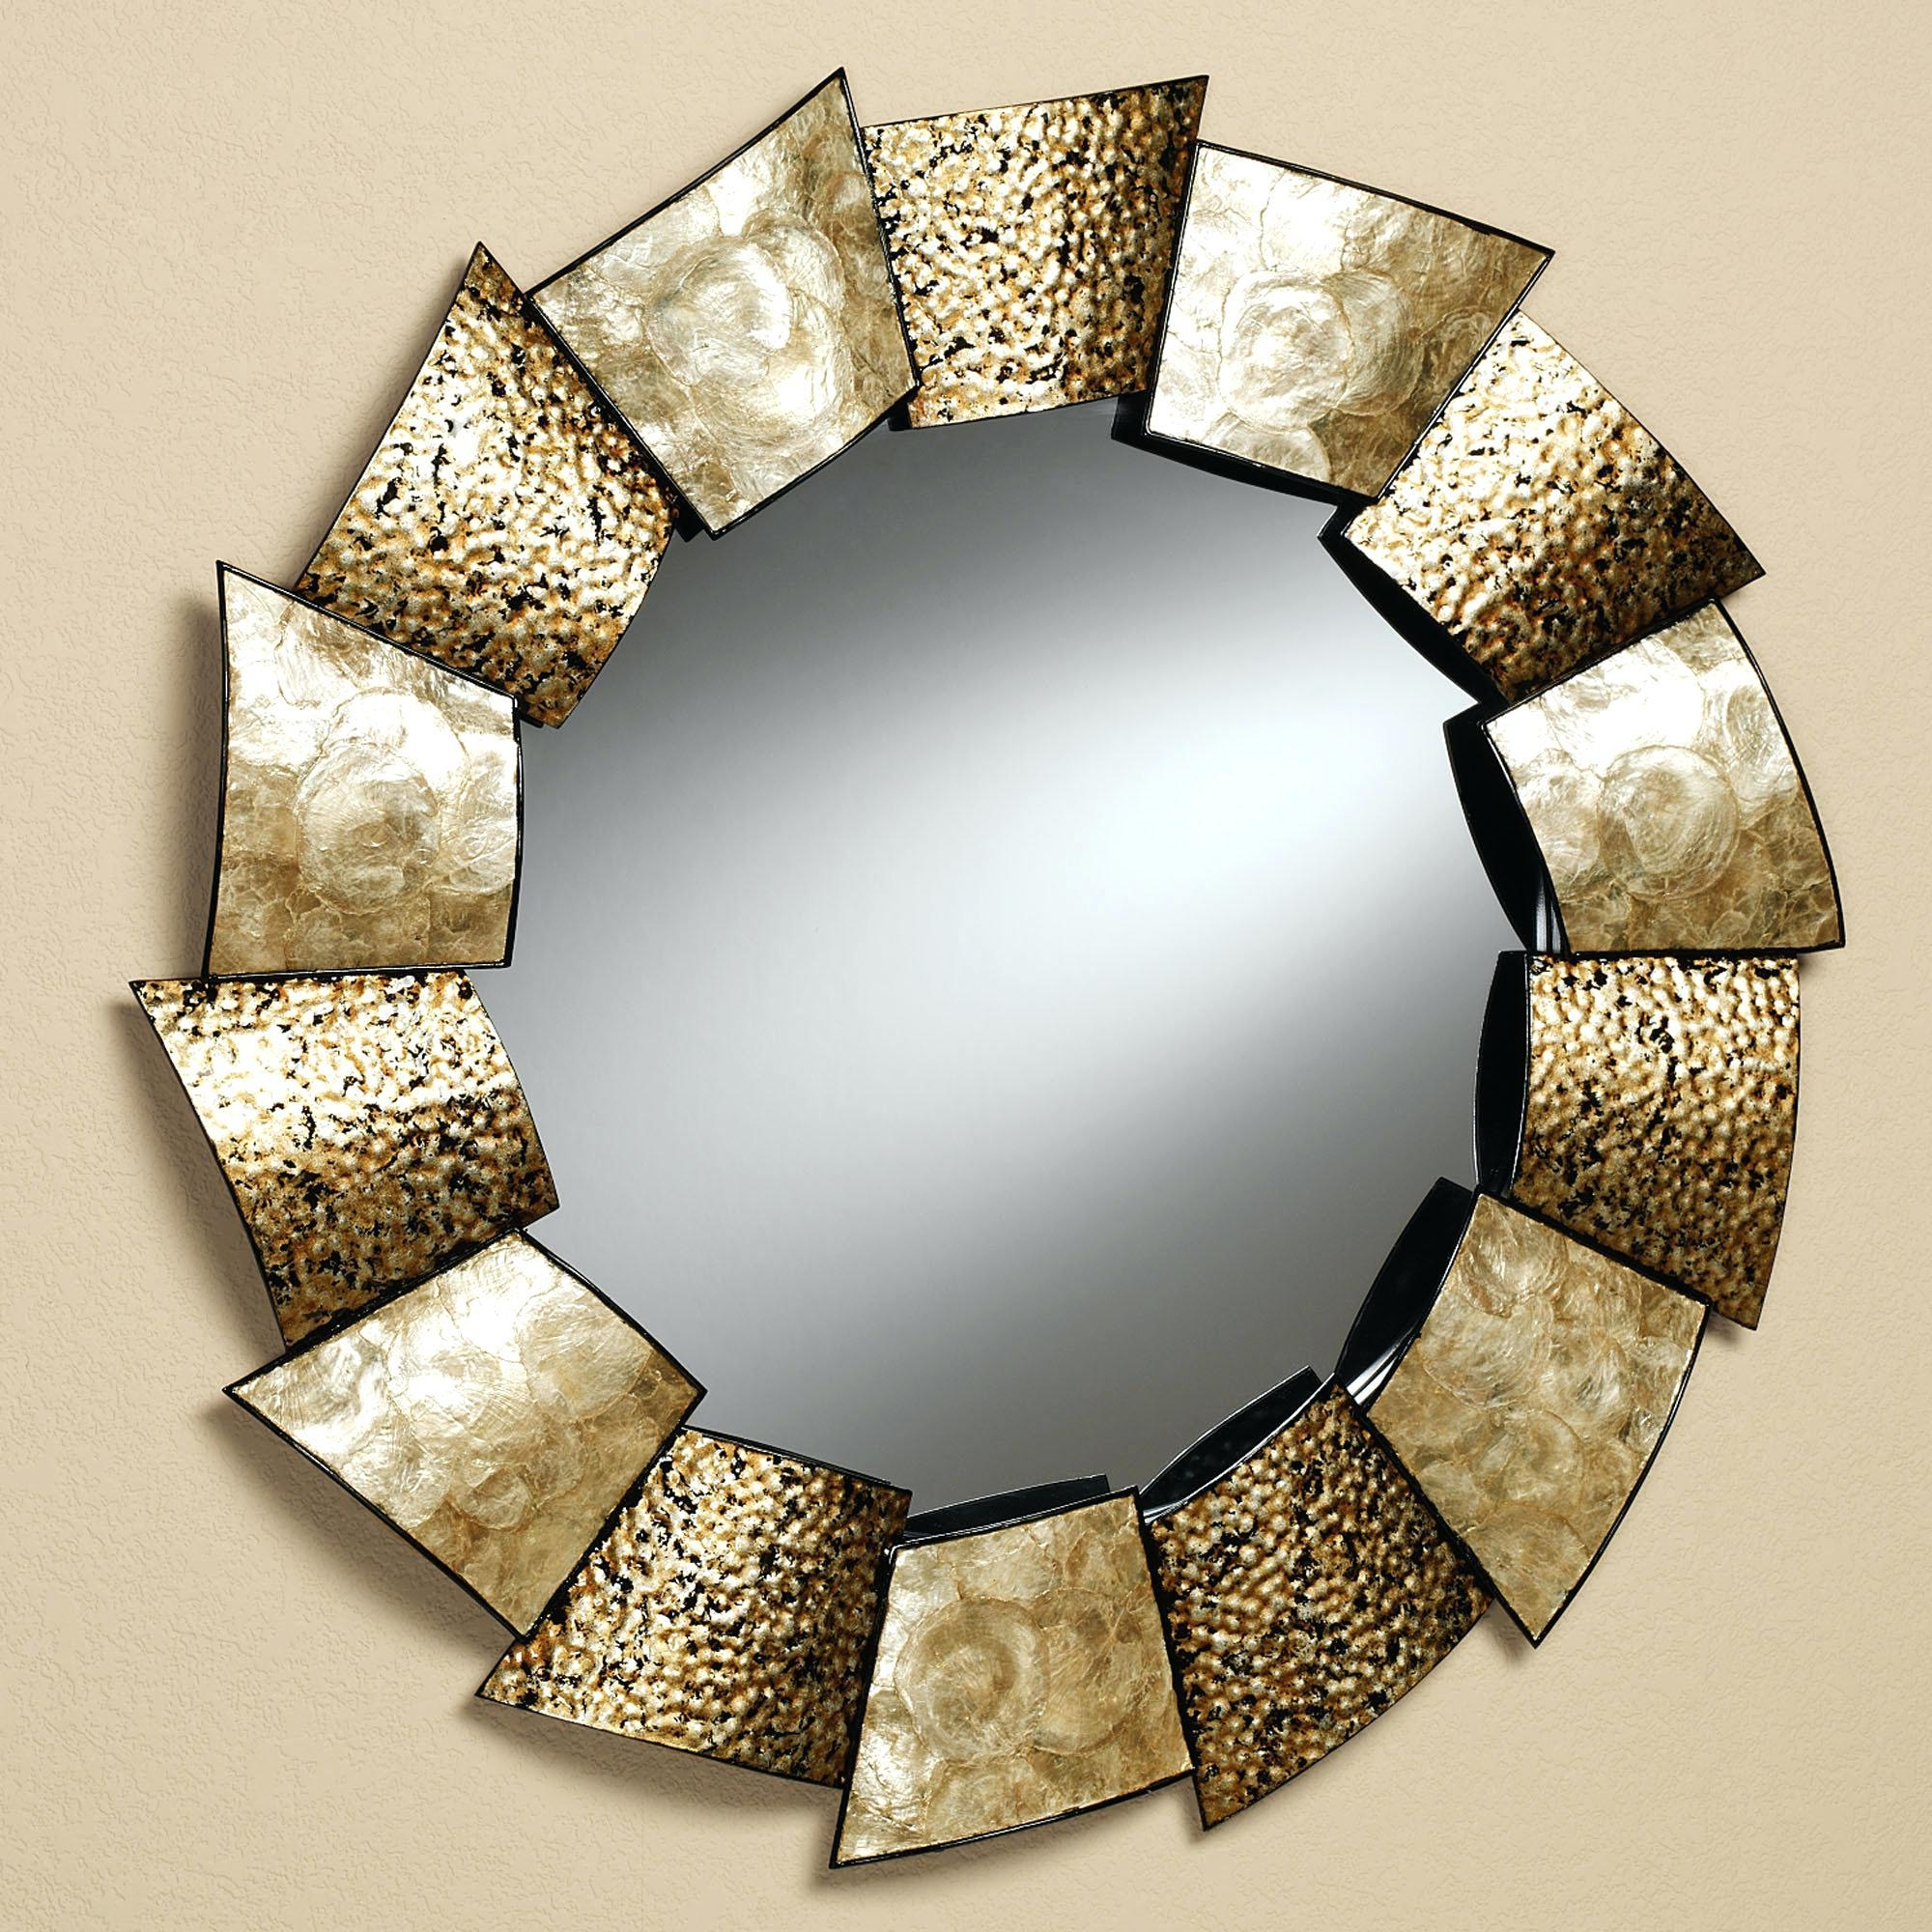 Unique Shaped Mirror 20 43 Oval Shaped Wall Mirrors Mirror Ideas